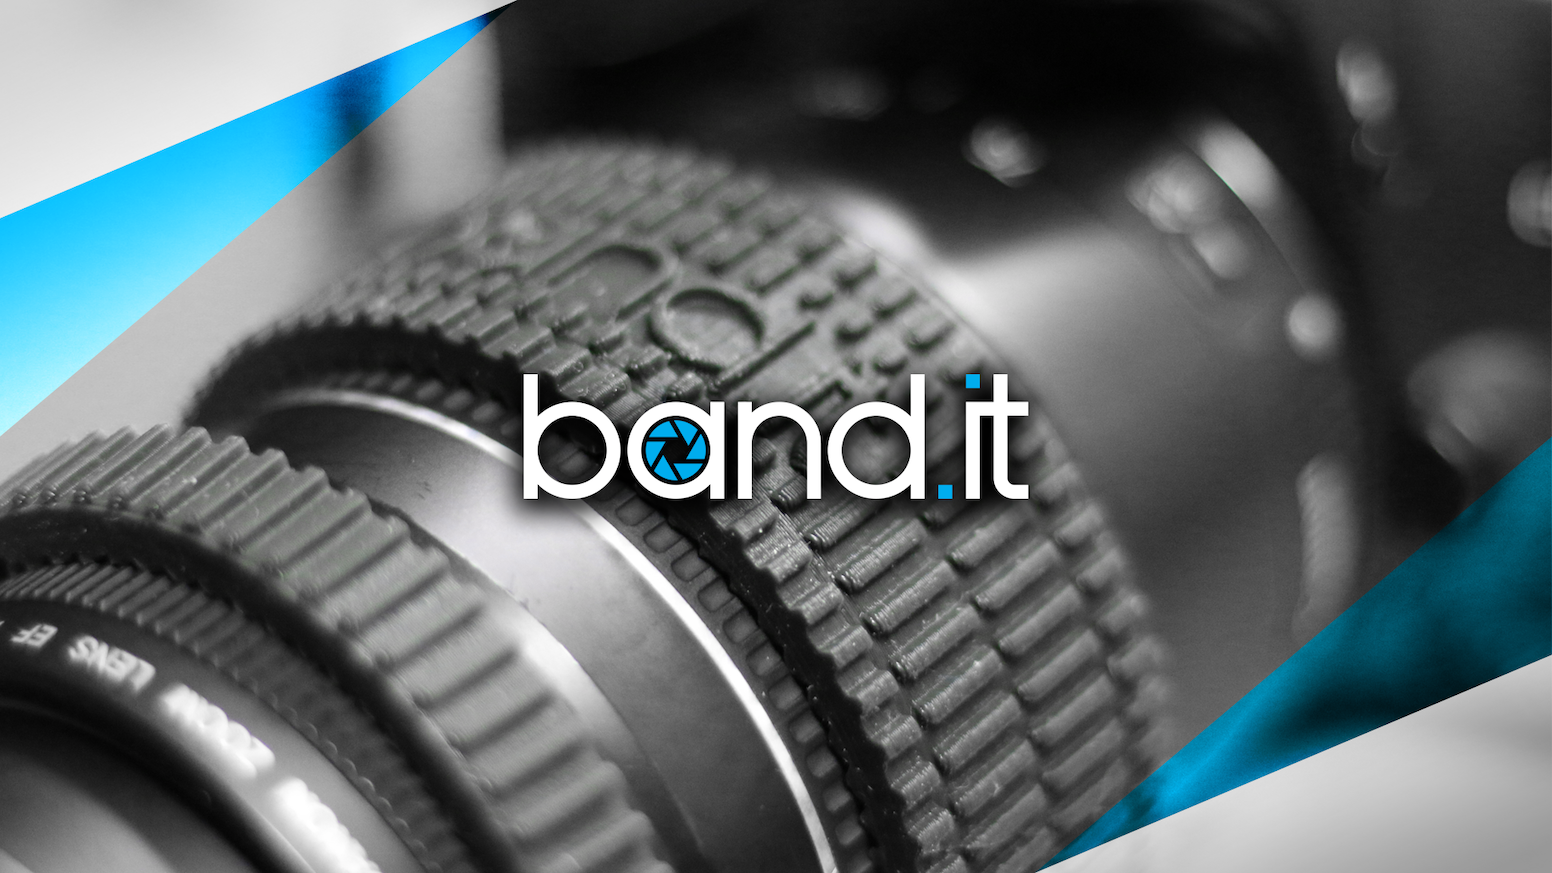 band.it is made of an extremely soft elastomer that makes camera adjustments easier and fumbling for your focus a thing of the past.